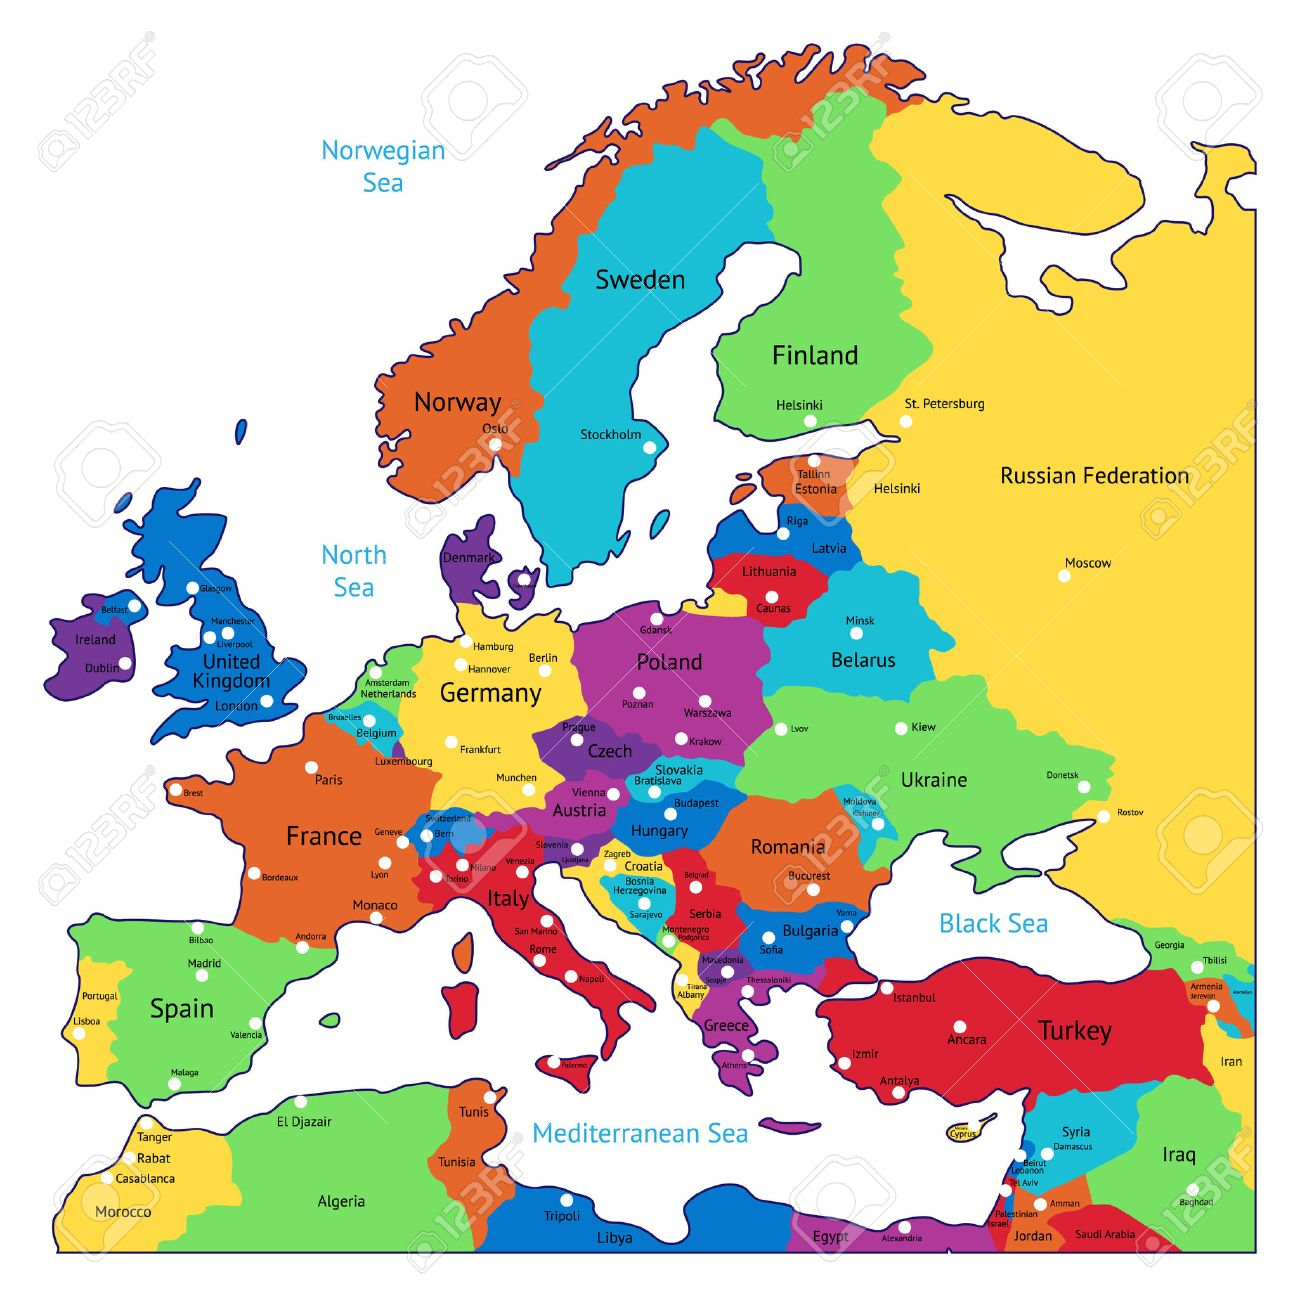 Multicolored Map Of Europe. Names, Town Marks And National Borders ...